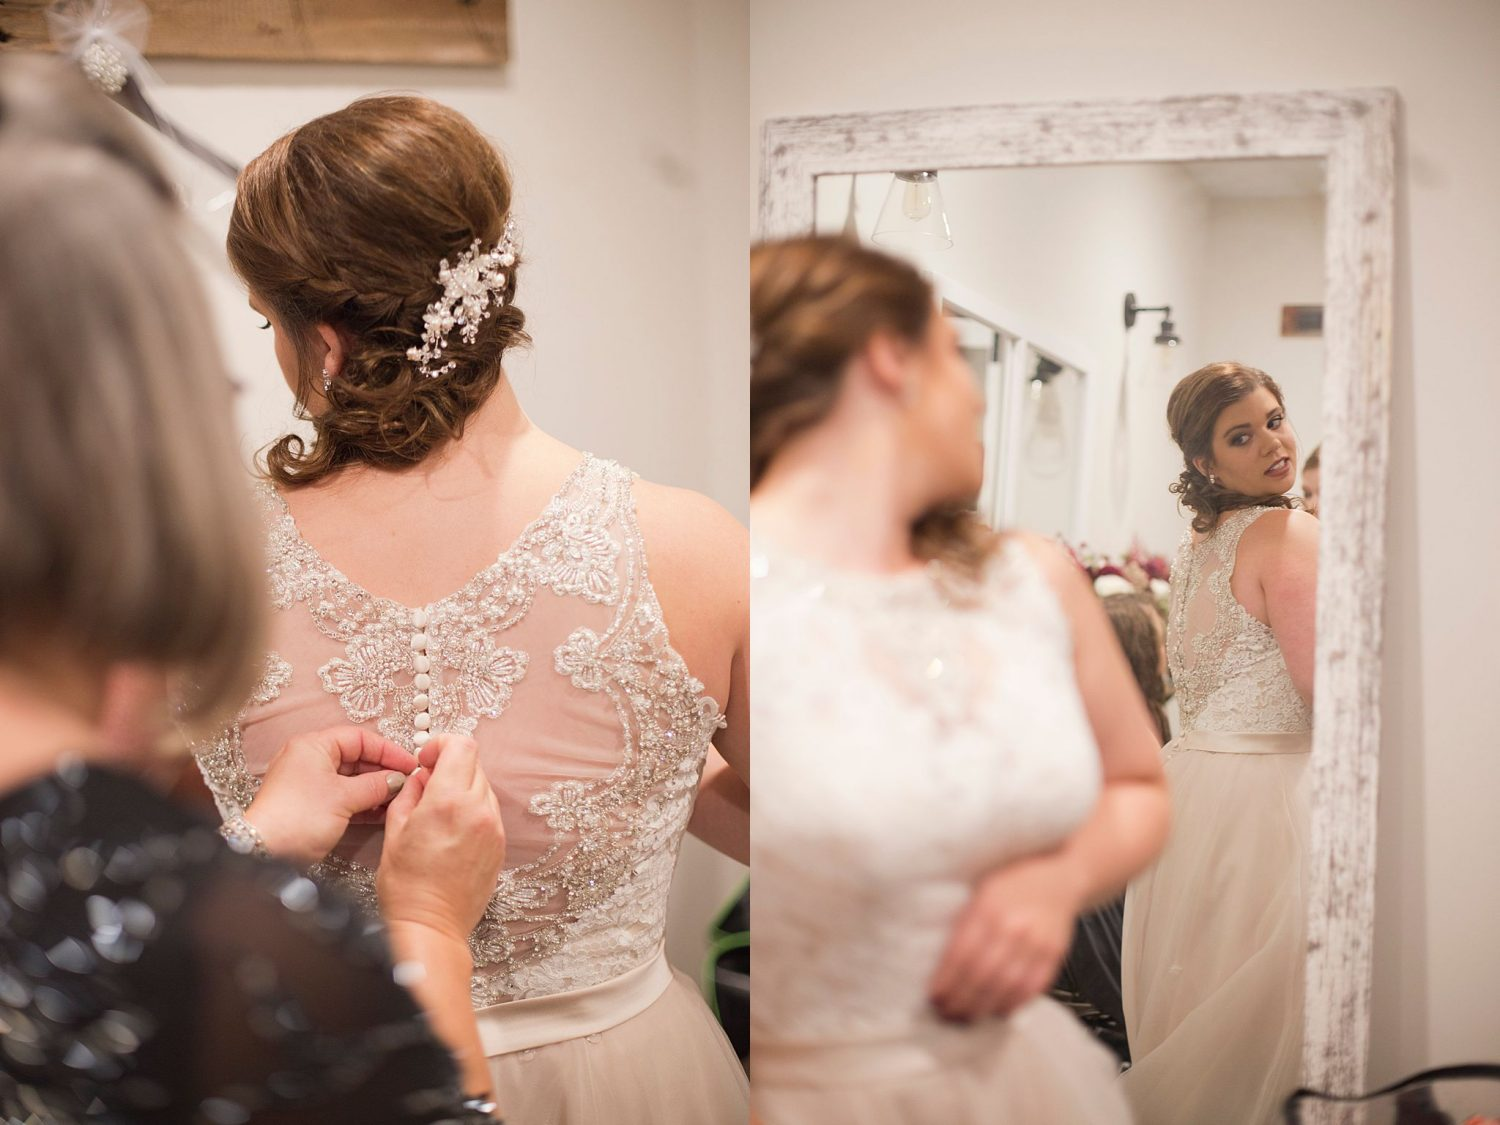 The bride peeks over her shoulder in the mirror to look at her dress with a smile.